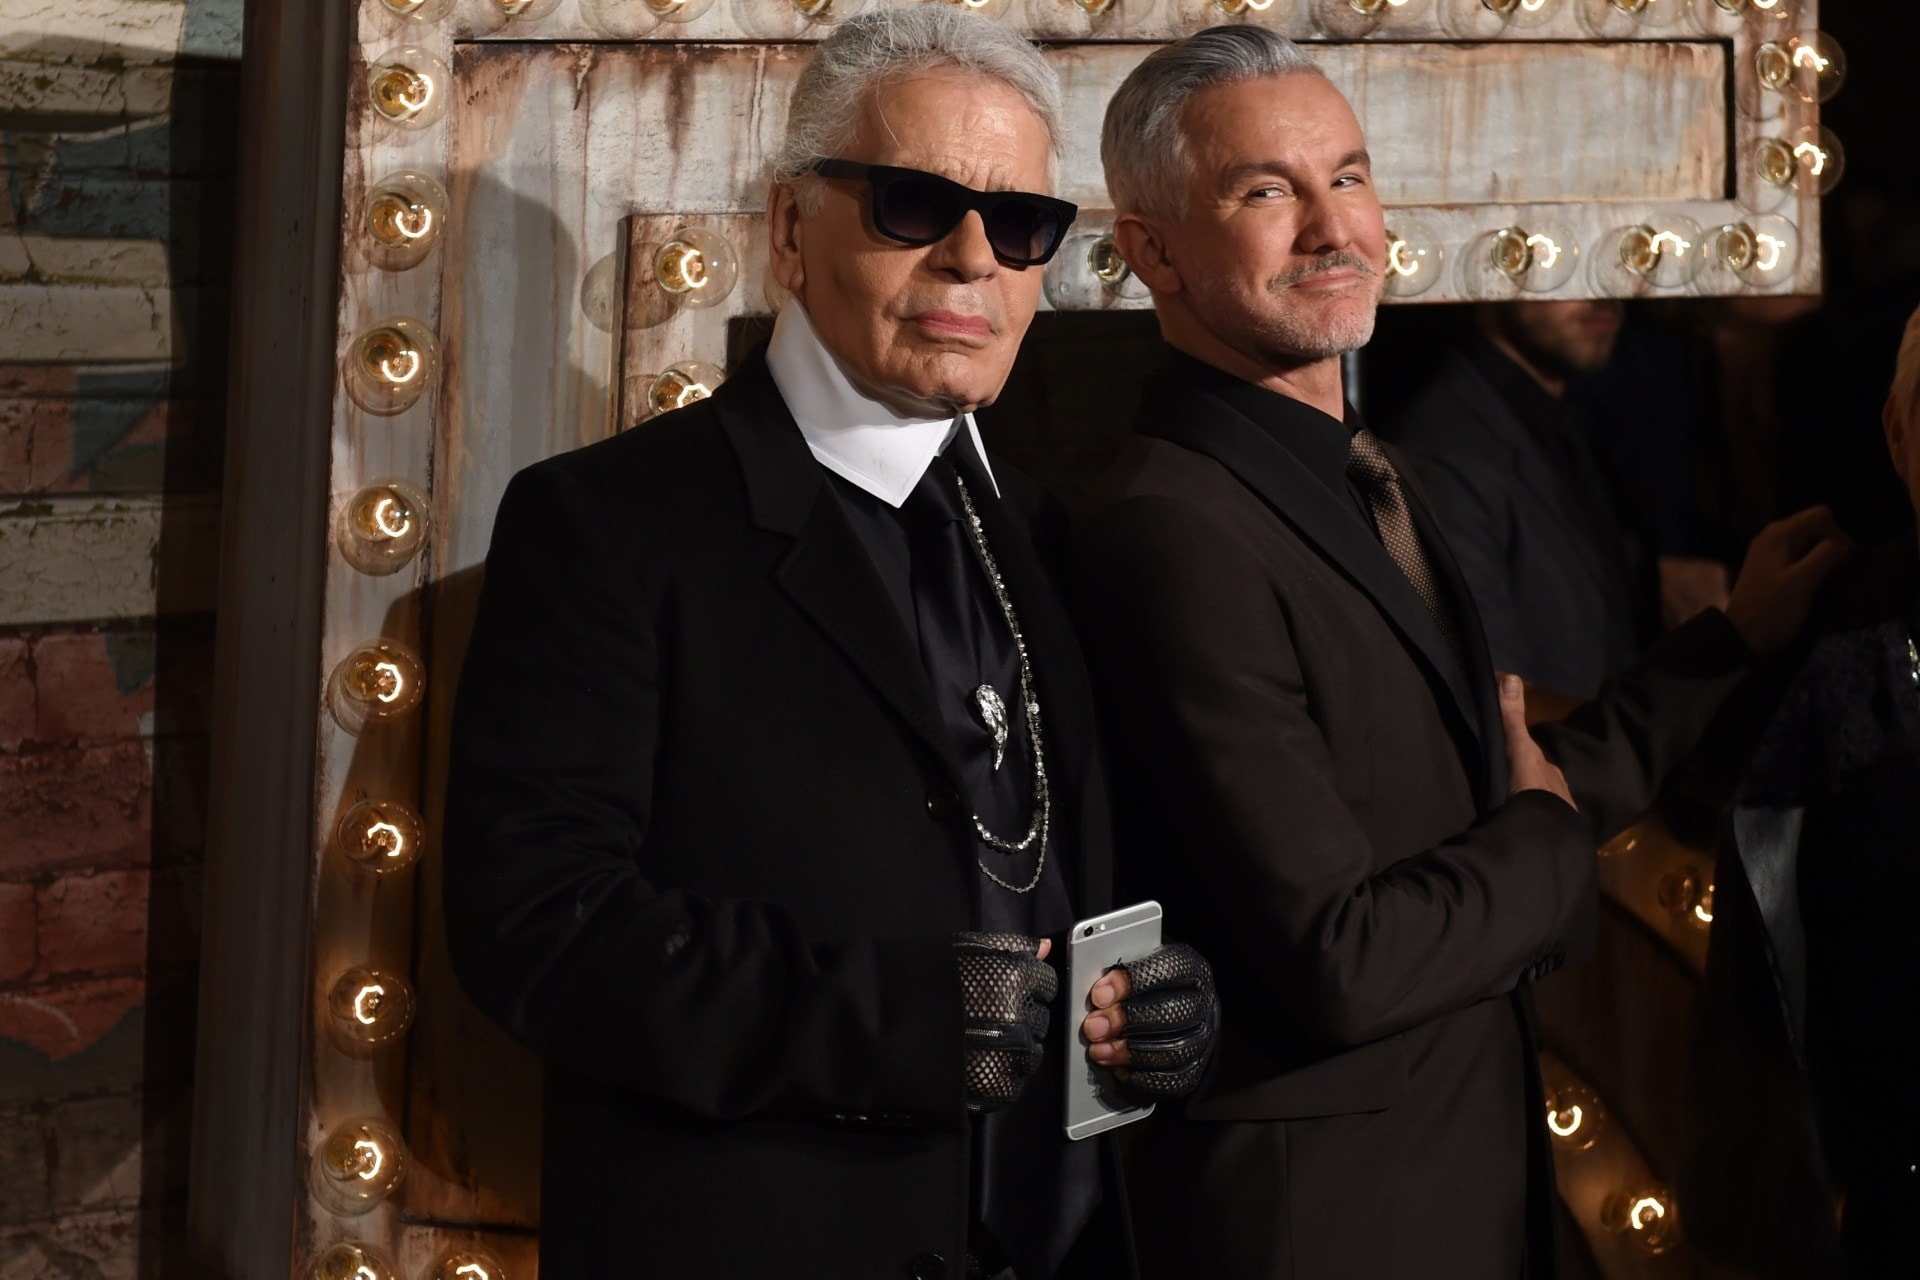 Karl Lagerfeld and Baz Luhrmann: in conversation from Vogue Australia's December 2003 issue